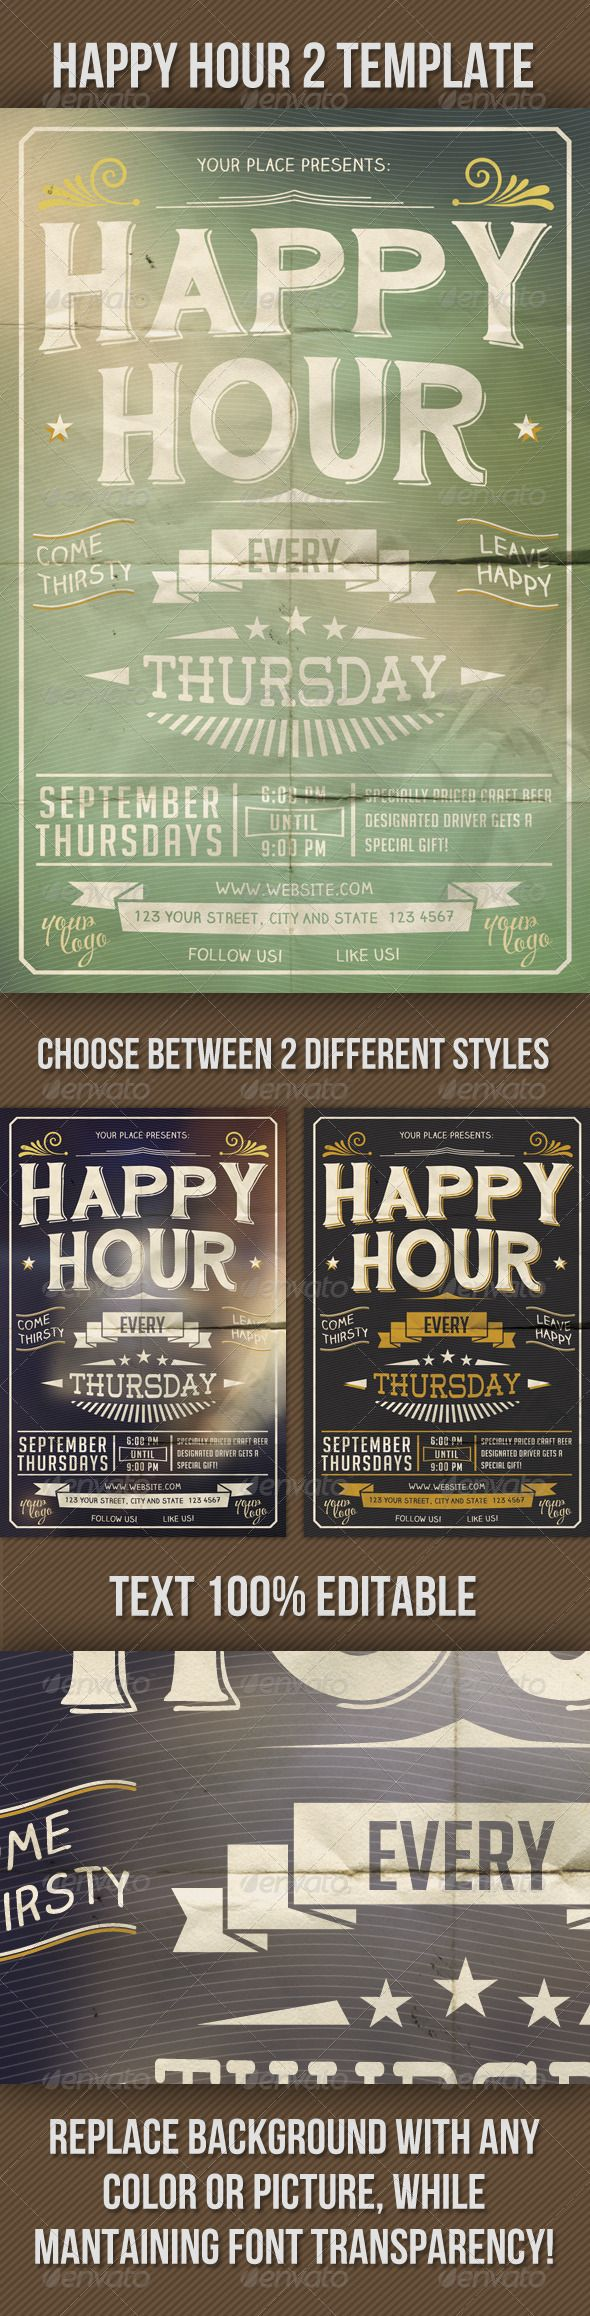 Happy Hour Indie Flyer Vol. 2 — Photoshop PSD #typographic #vintage • Available here → https://graphicriver.net/item/happy-hour-indie-flyer-vol-2/5471041?ref=pxcr